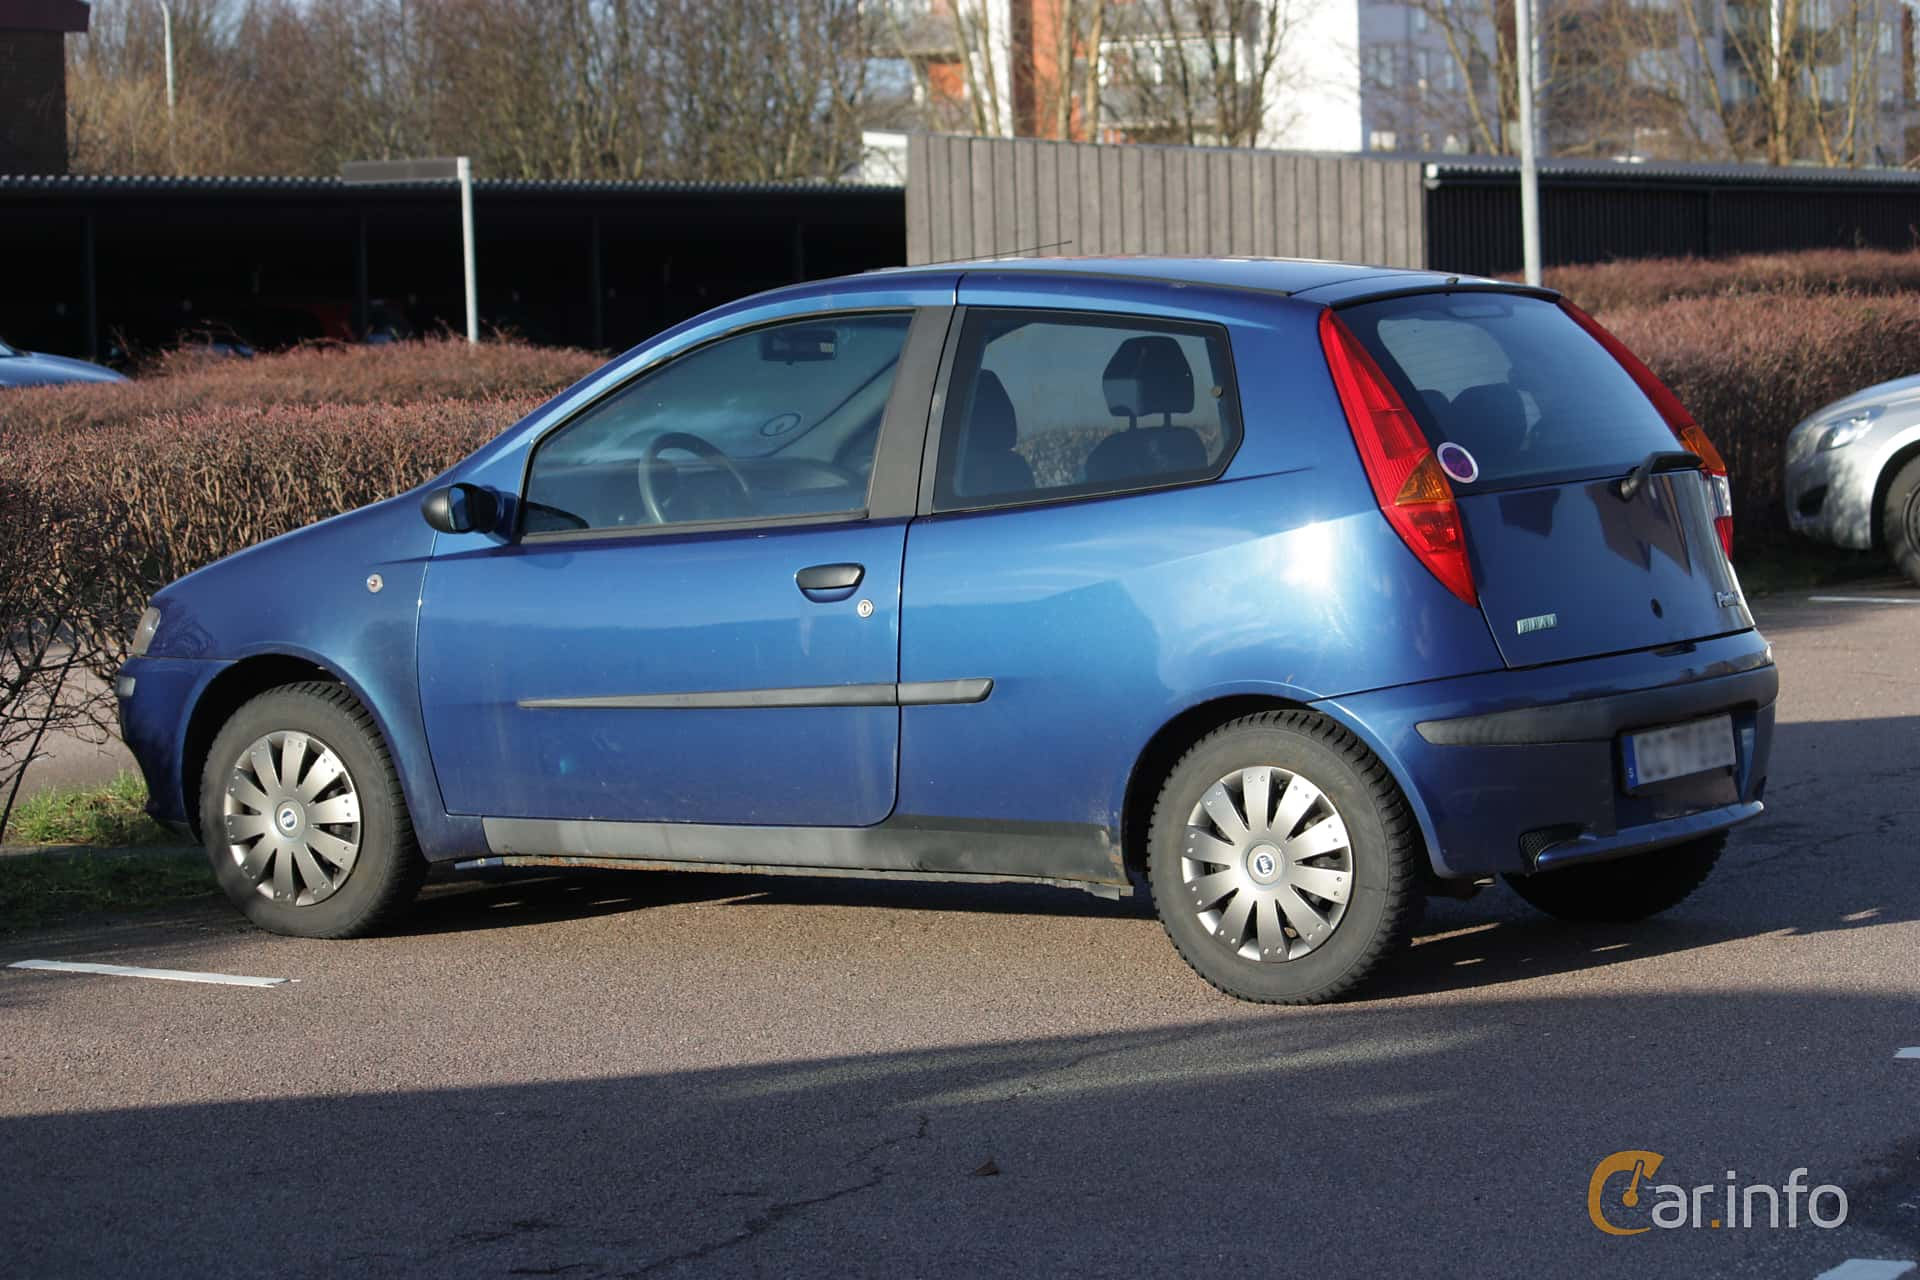 2 images of fiat punto 3 door 1 2 fire manual 60hp 2000 by rh car info fiat punto 2000 manuale fiat punto 2000 manual olx